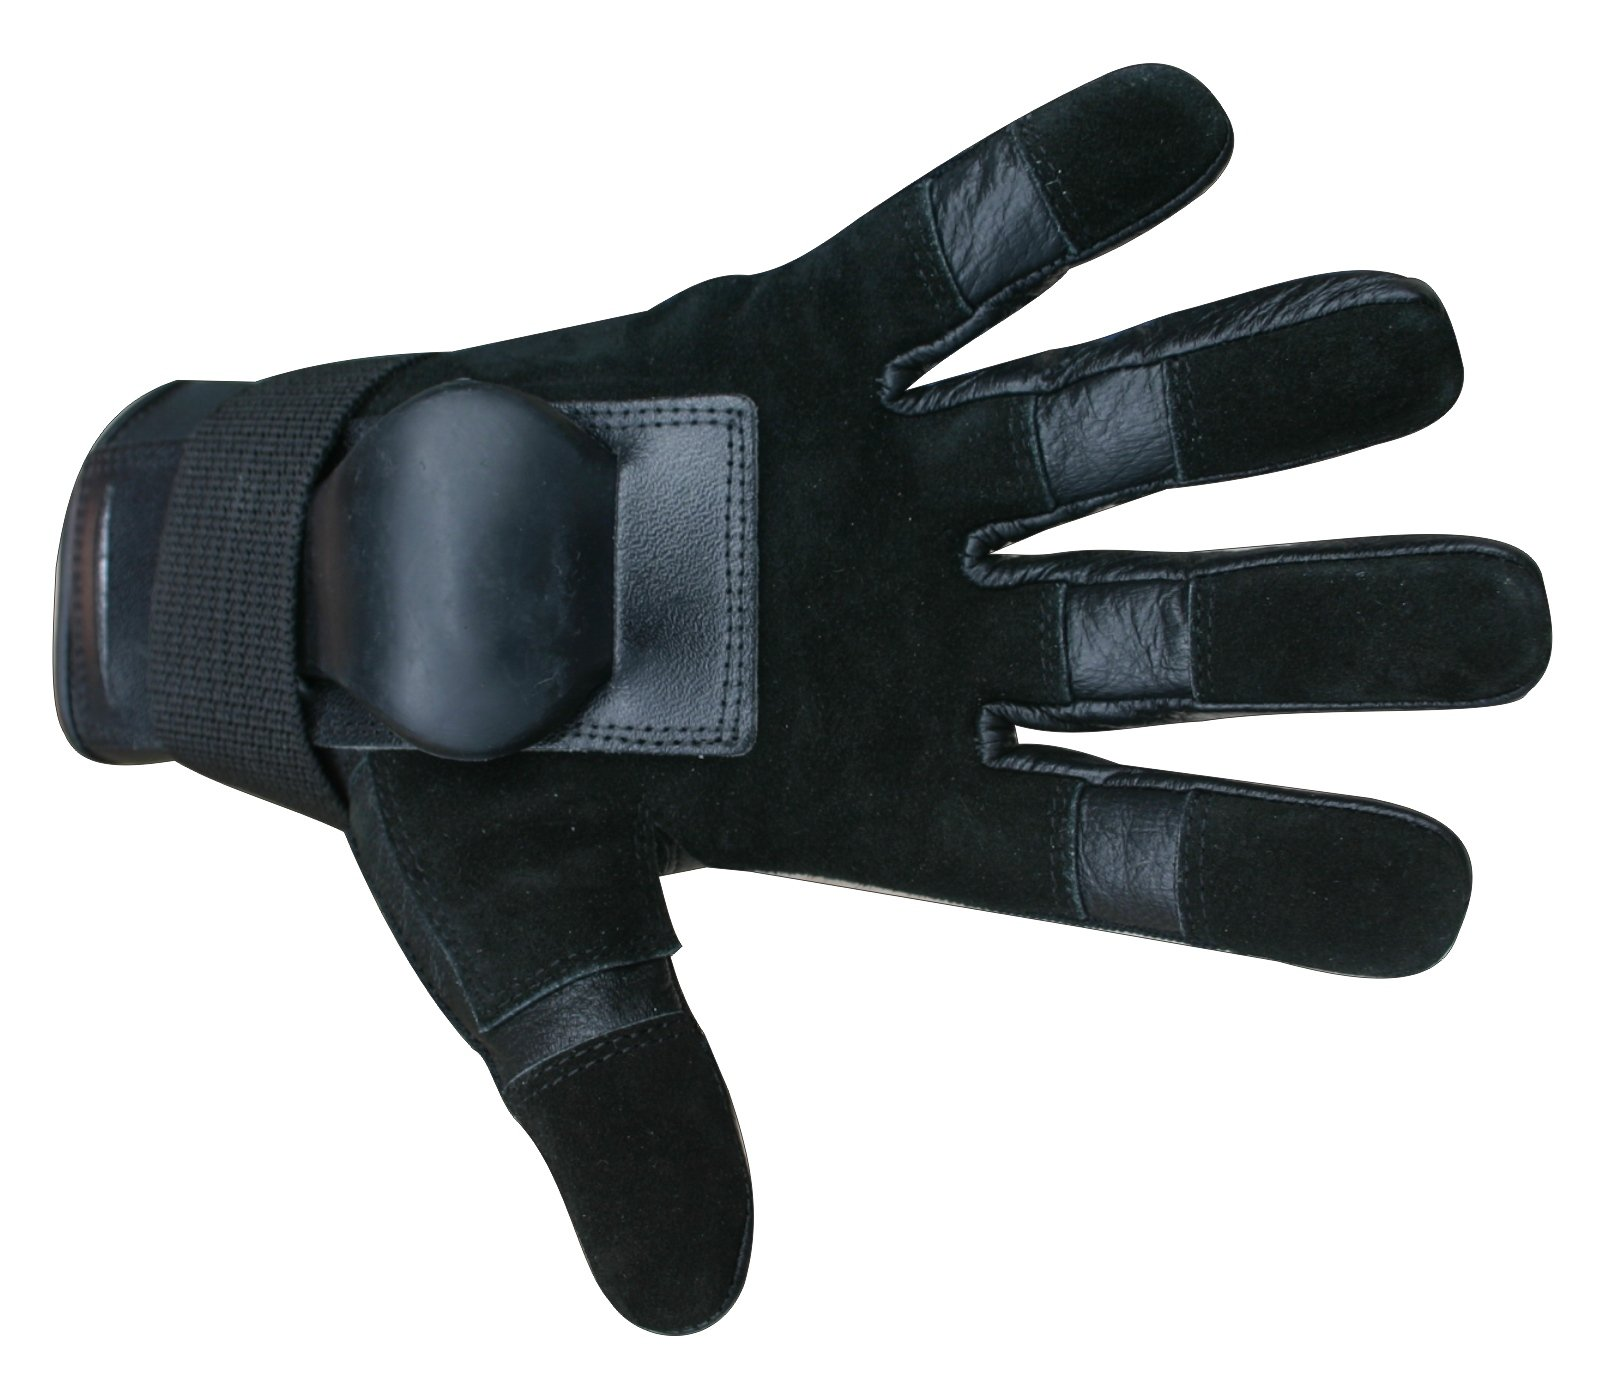 Hillbilly Wrist Guard Gloves - Full Finger (Black, Medium) by Hillbilly protective gear